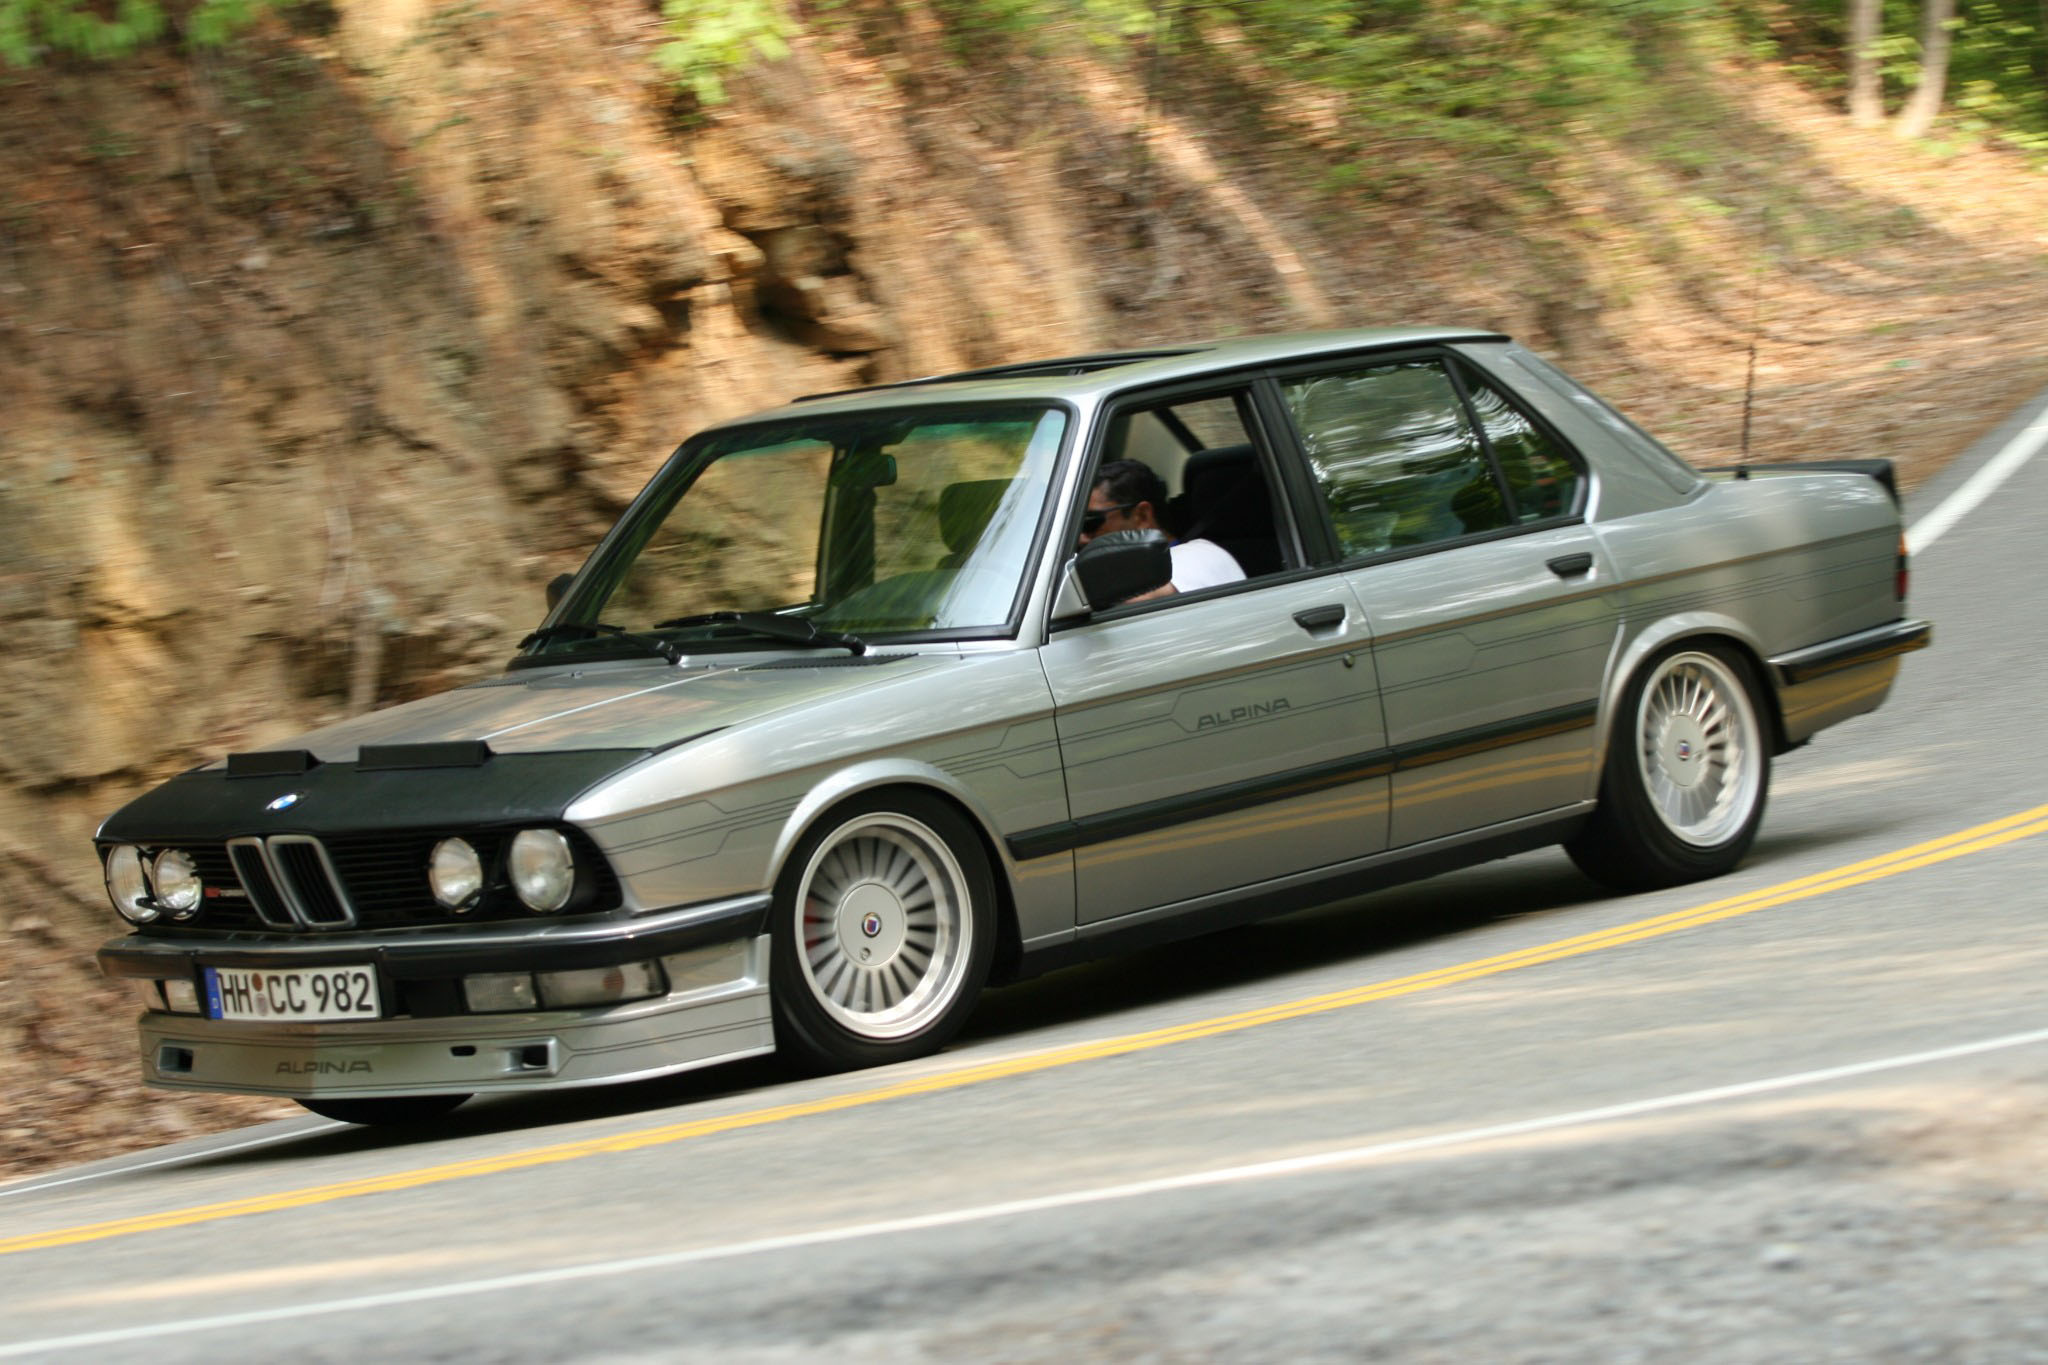 1986 BMW Alpina B7 Turbo Just Listed In Motion